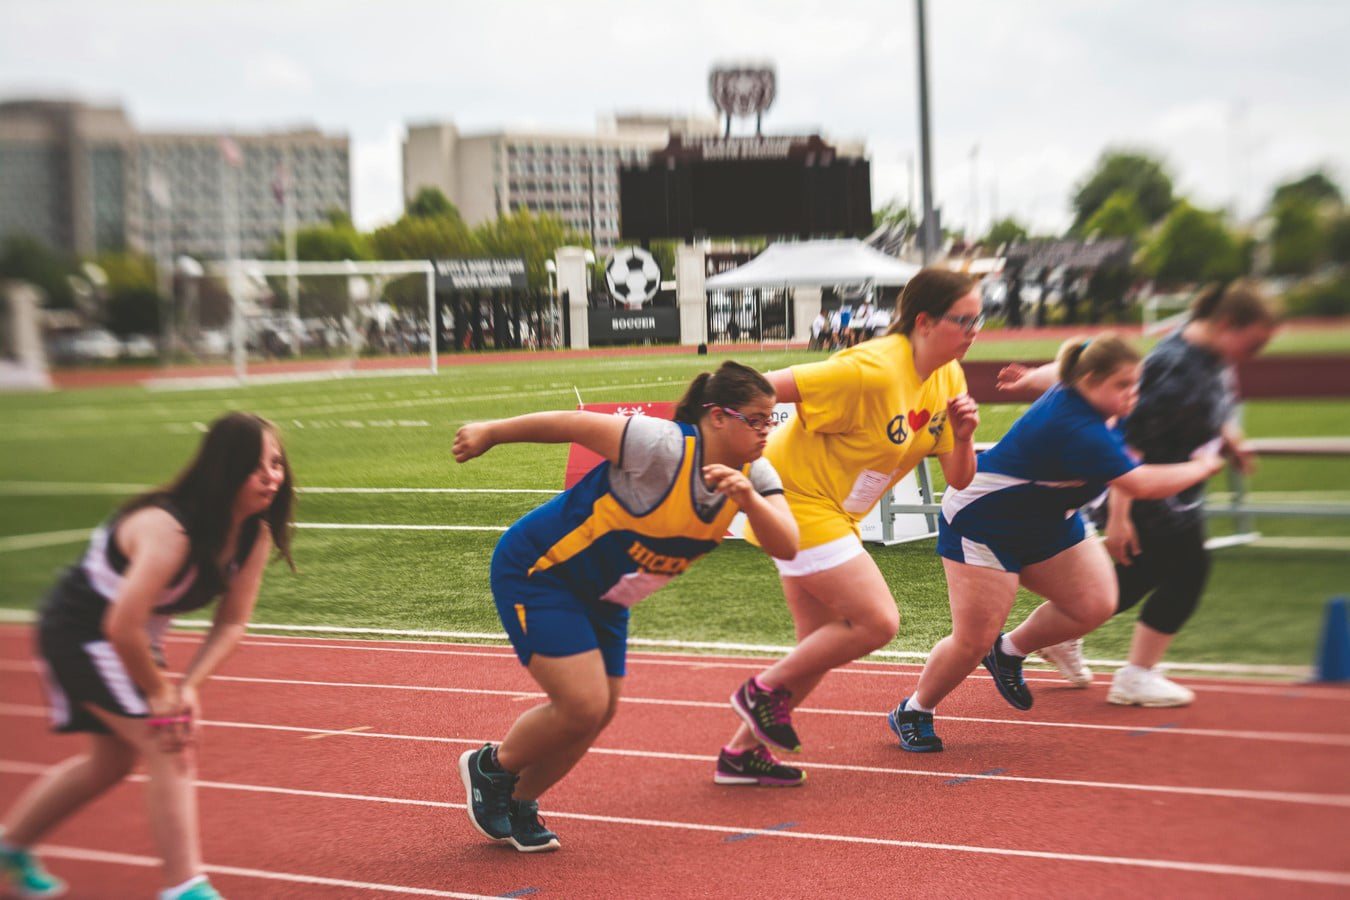 A group of five athletes break off the starting line during a track race